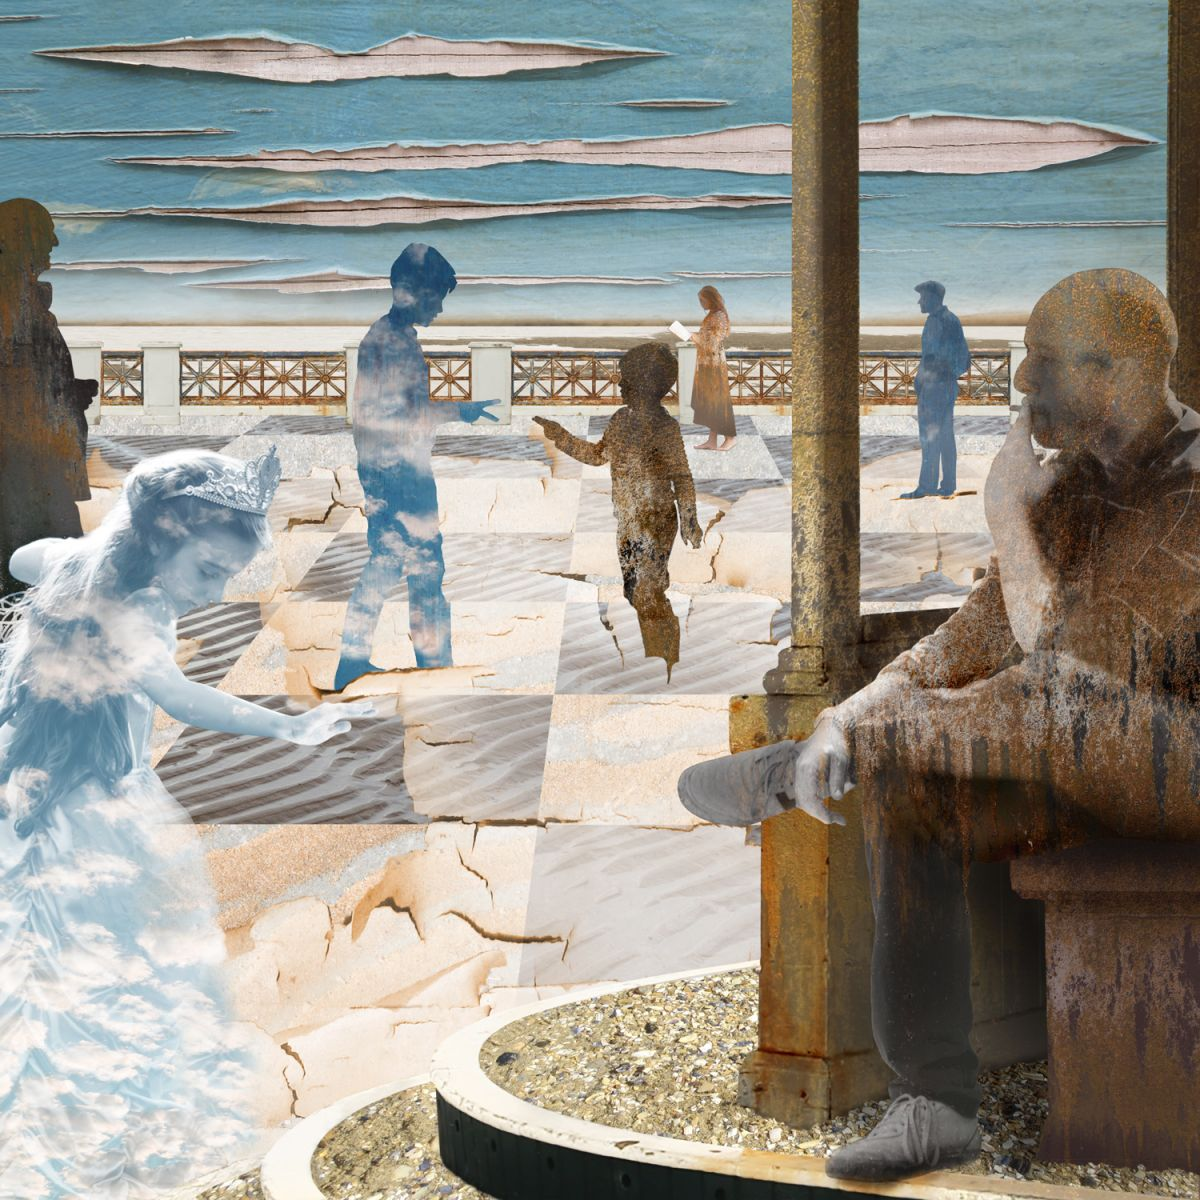 Claire Gill, Artist, Digital Photomontage, The Wasteland by TS Eliot, A game of Chess, On Margate Sands, Lombard Street Gallery, The Wasteland, TS Eliot, Photomontage, Limited Edition Print, Margate, hands, sea